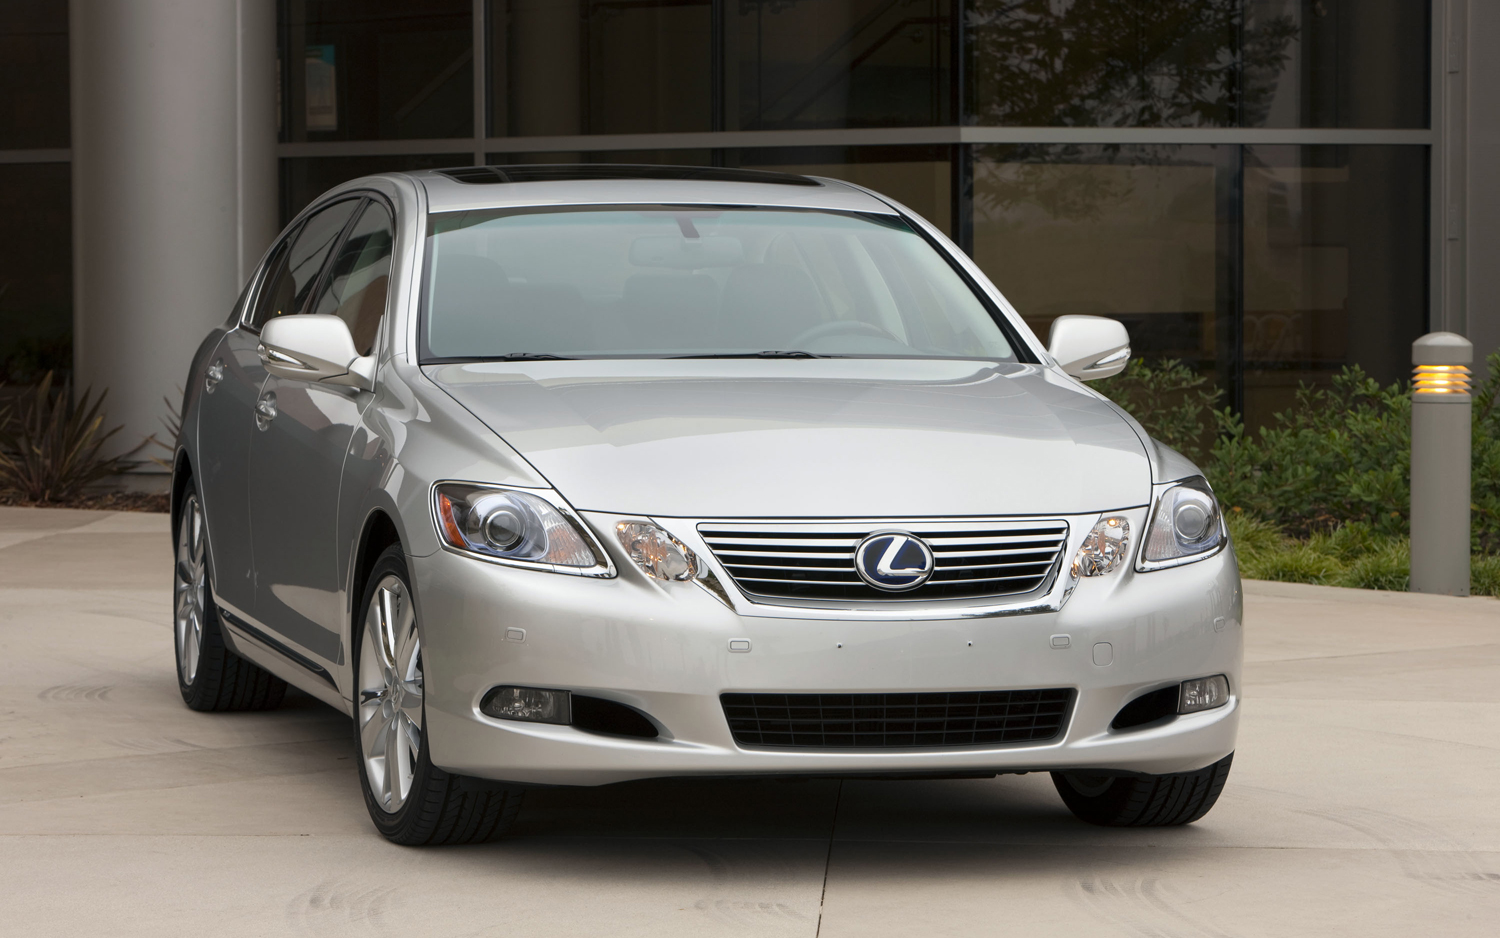 Lexus GS 450h 2011 photo - 3